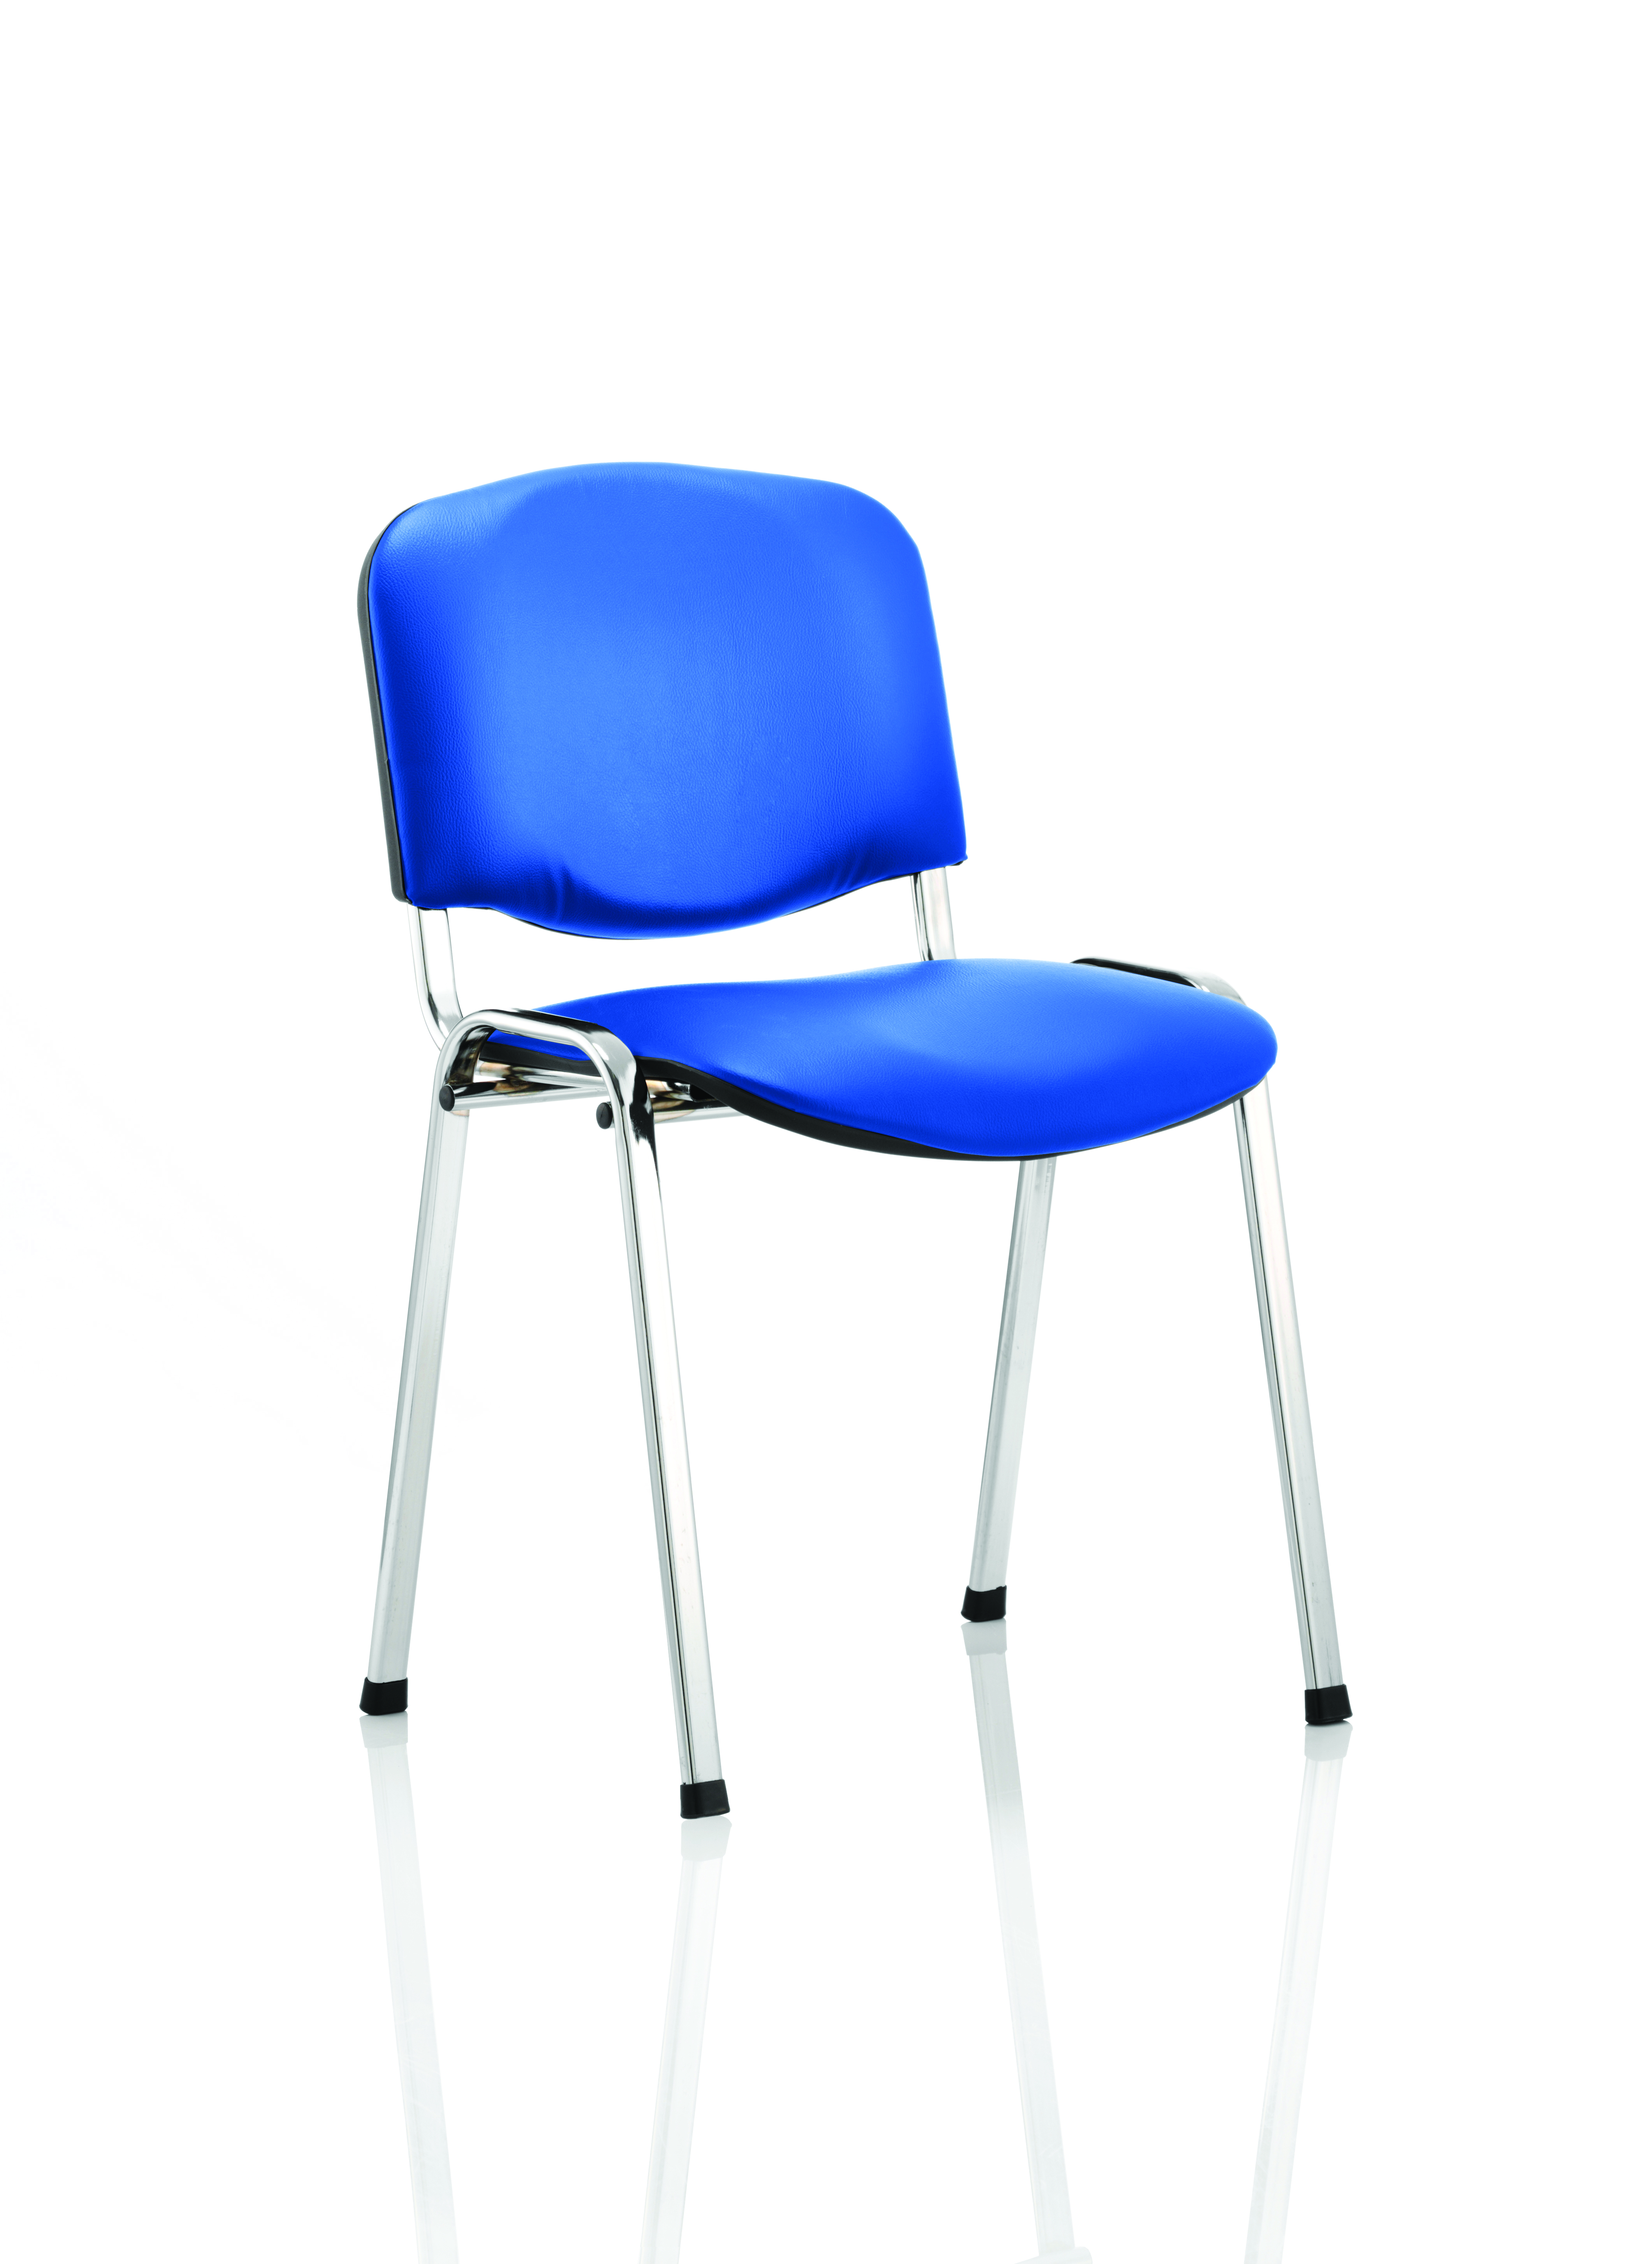 Stacking Chairs ISO Stacking Chair Blue Vinyl Chrome Frame BR000072